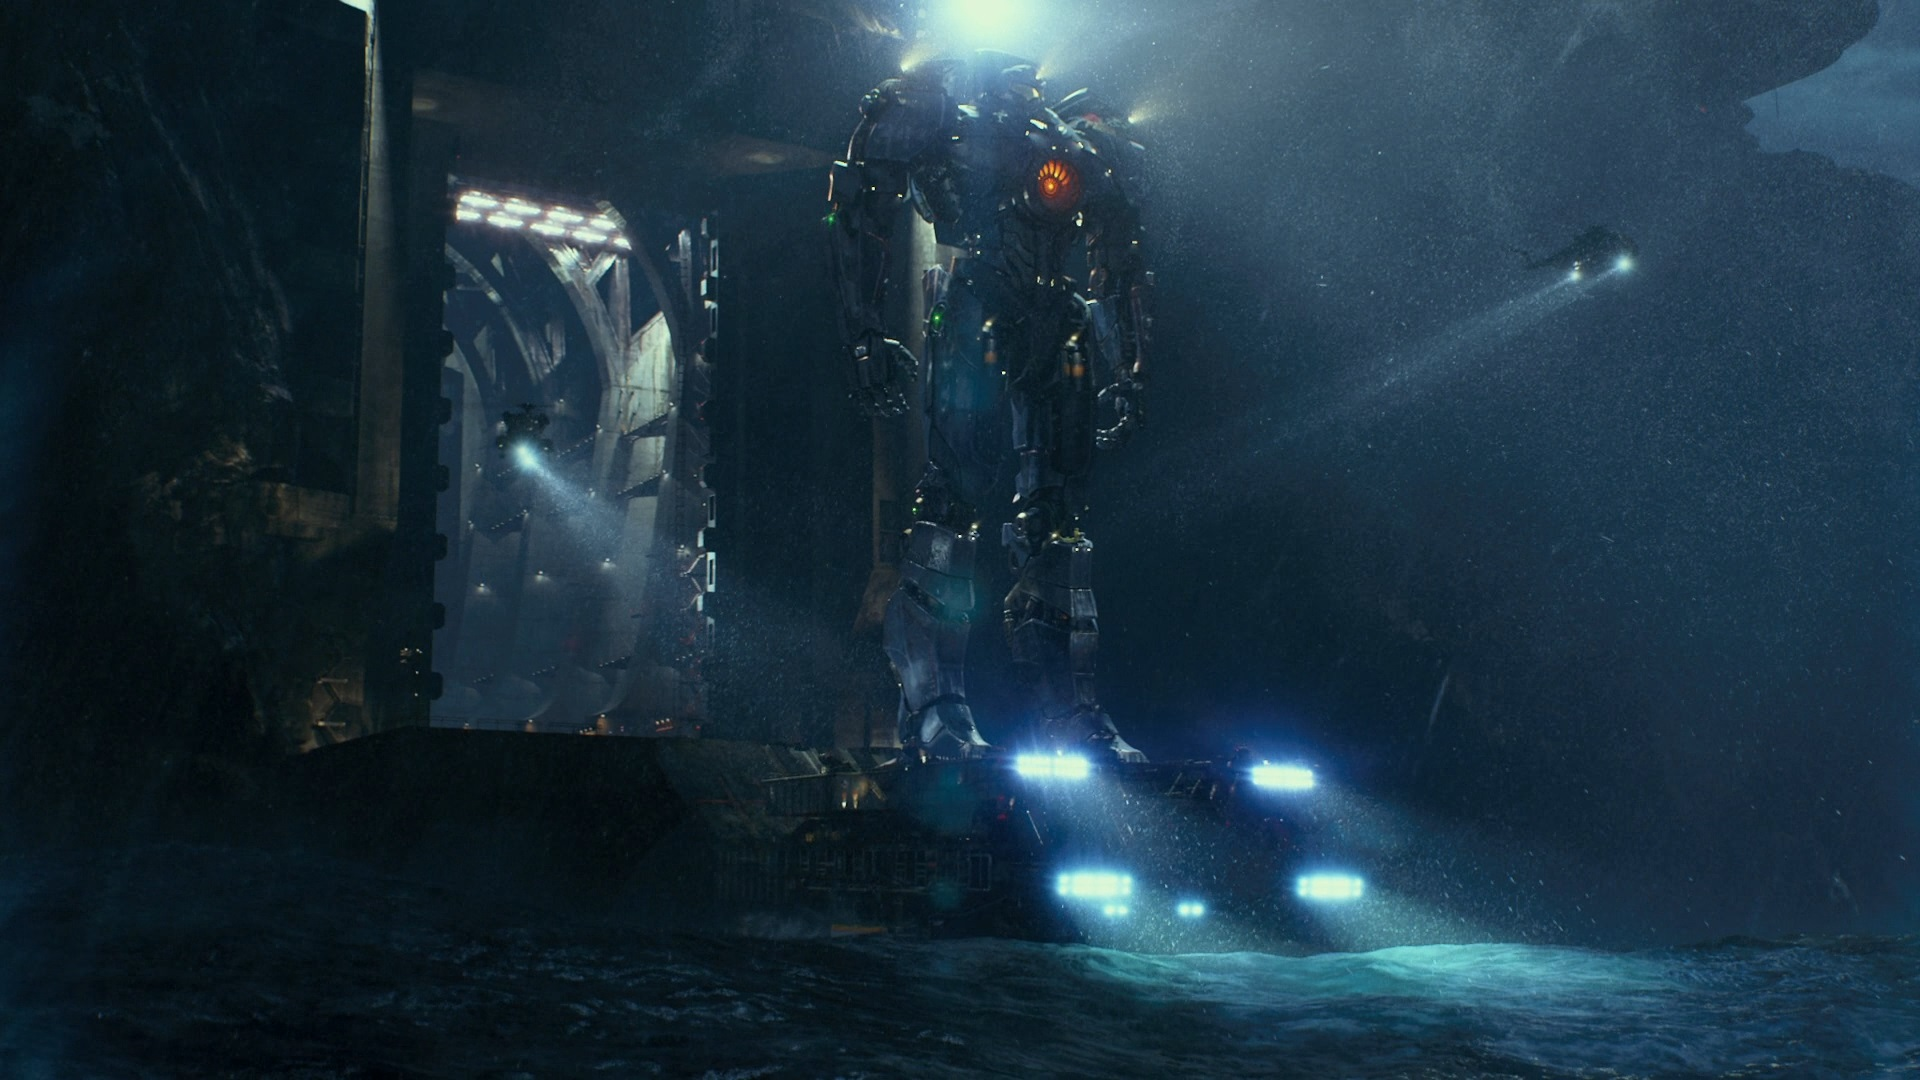 pacific rim wallpaper background